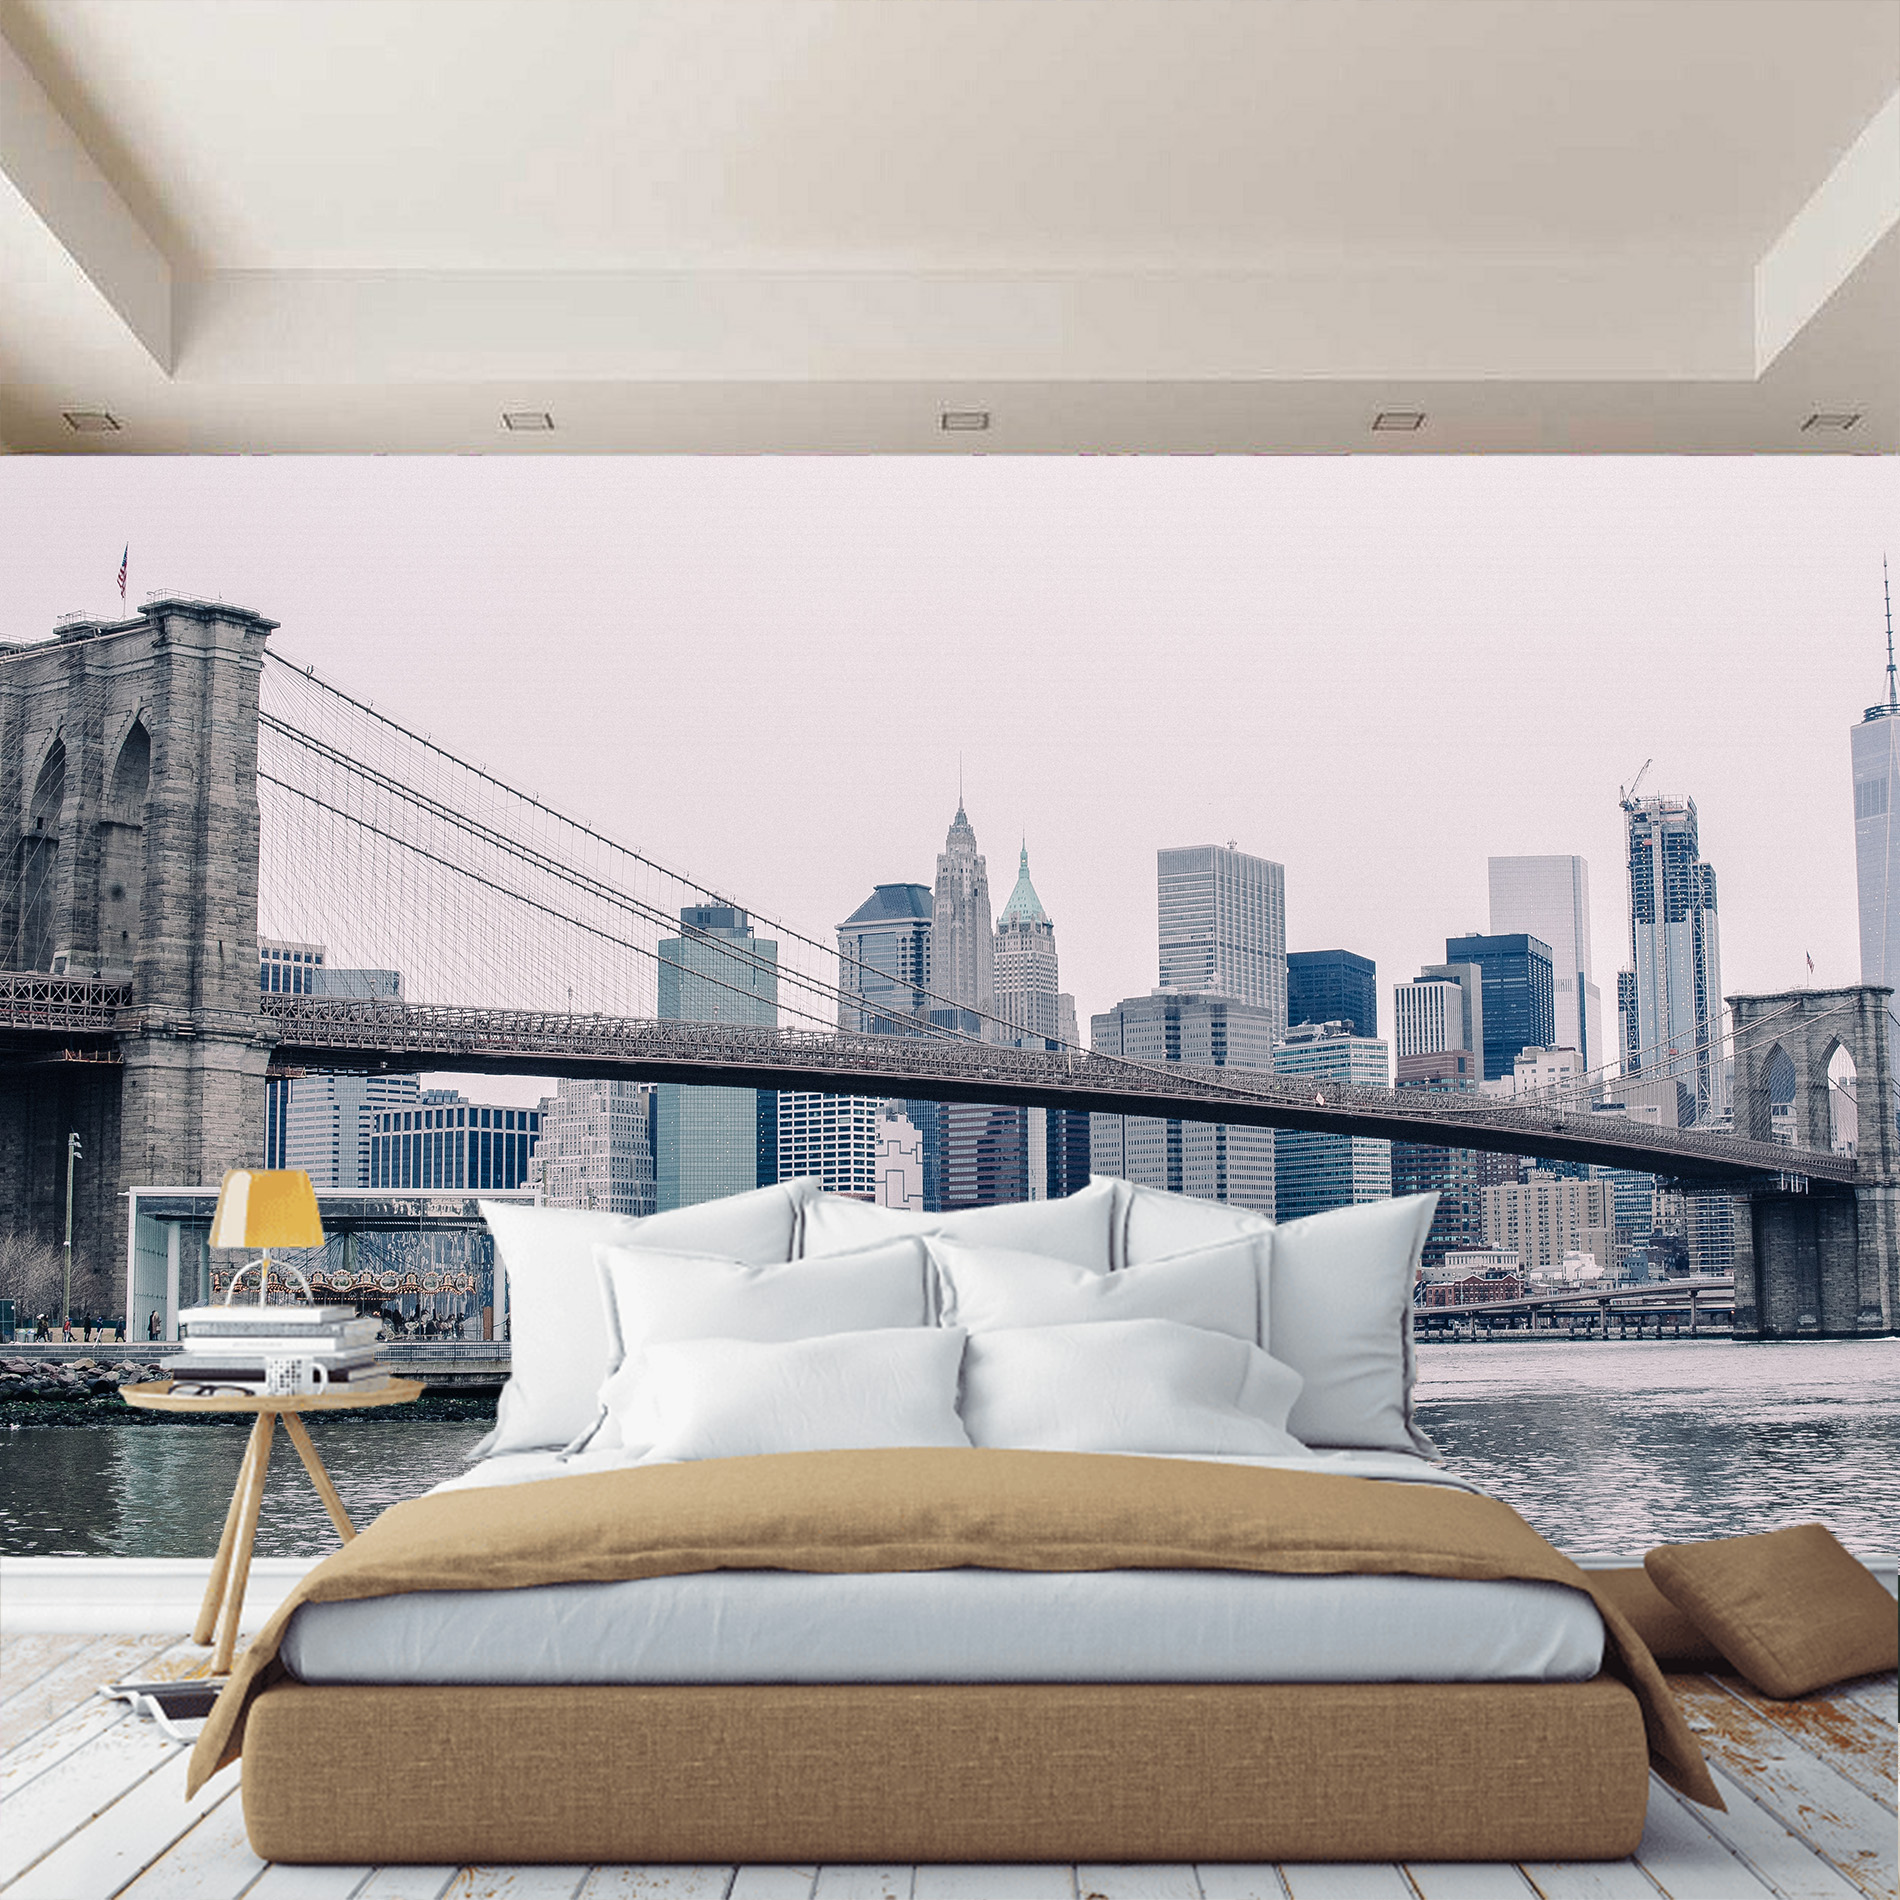 Photo Wallpaper City New York, Brooklyn Bridge. Stereoscopic photo wallpaper for bedroom room home - 4